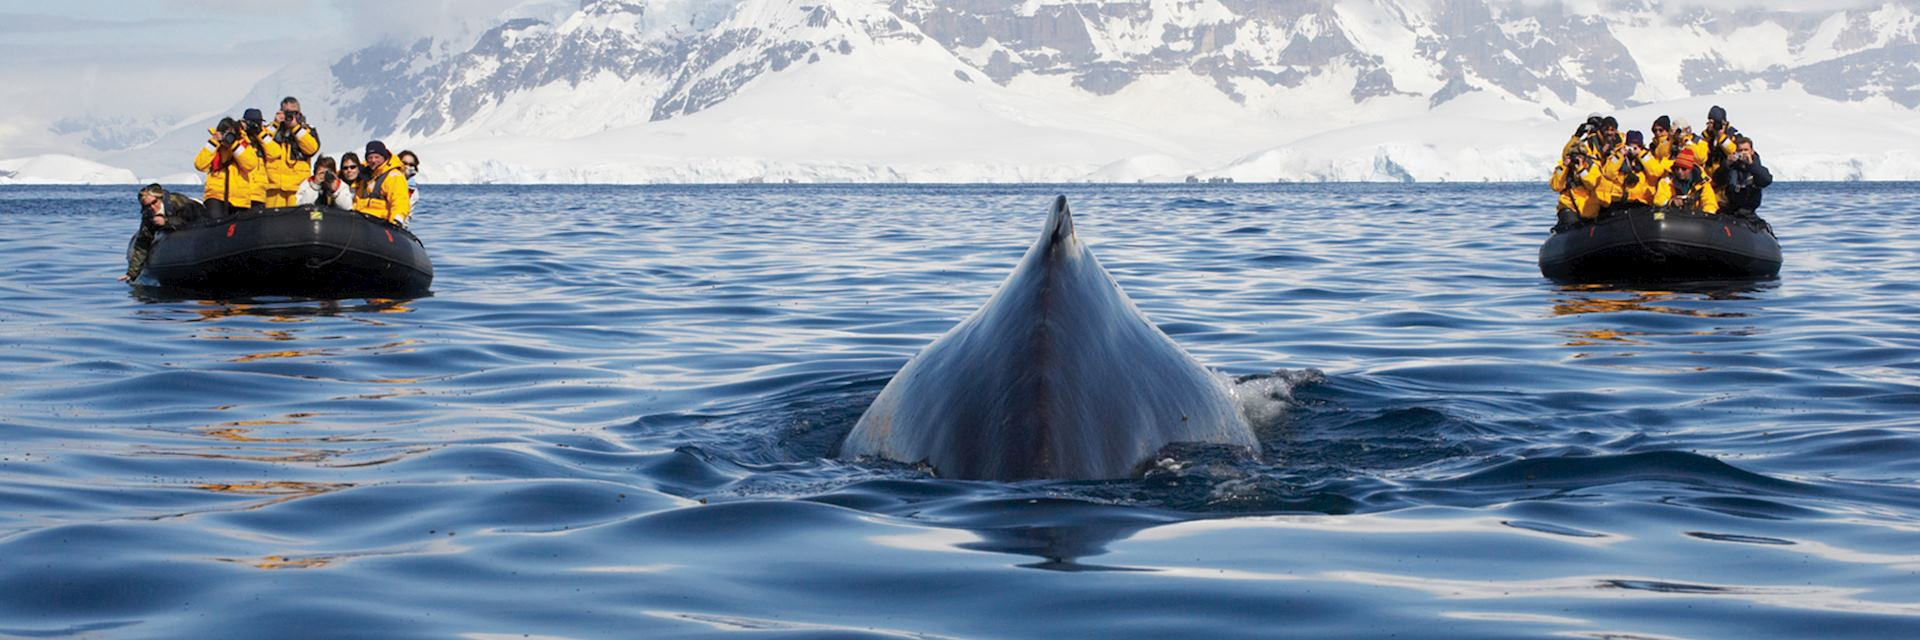 Two zodiac boats have a close encounter with a humpback whale